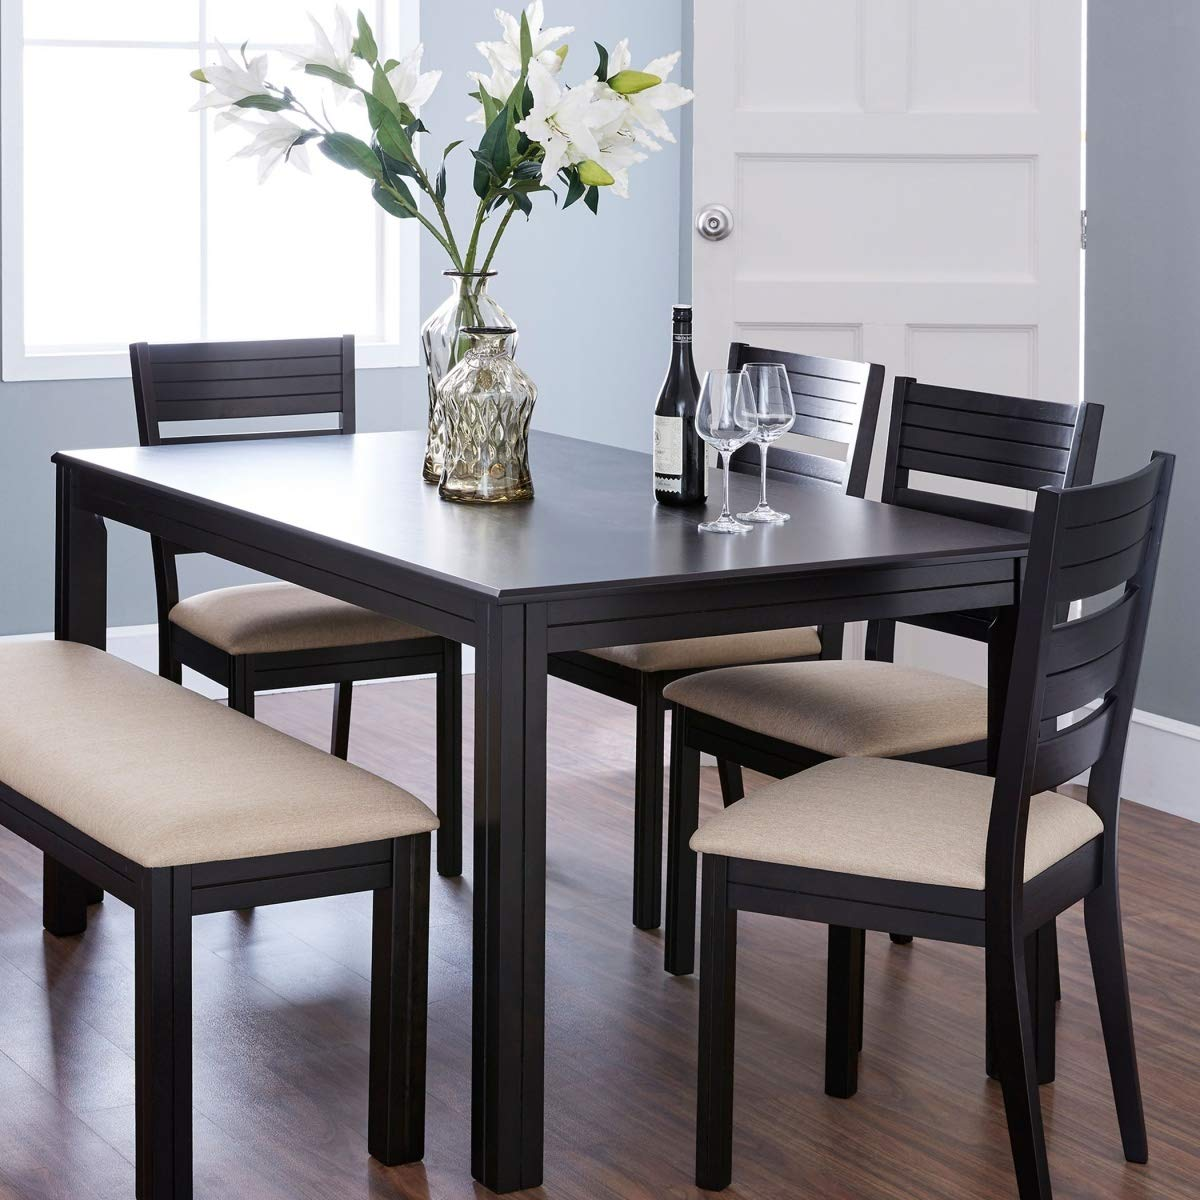 Home Centre Montoya Dining Table Without Chairs - 6 Seater